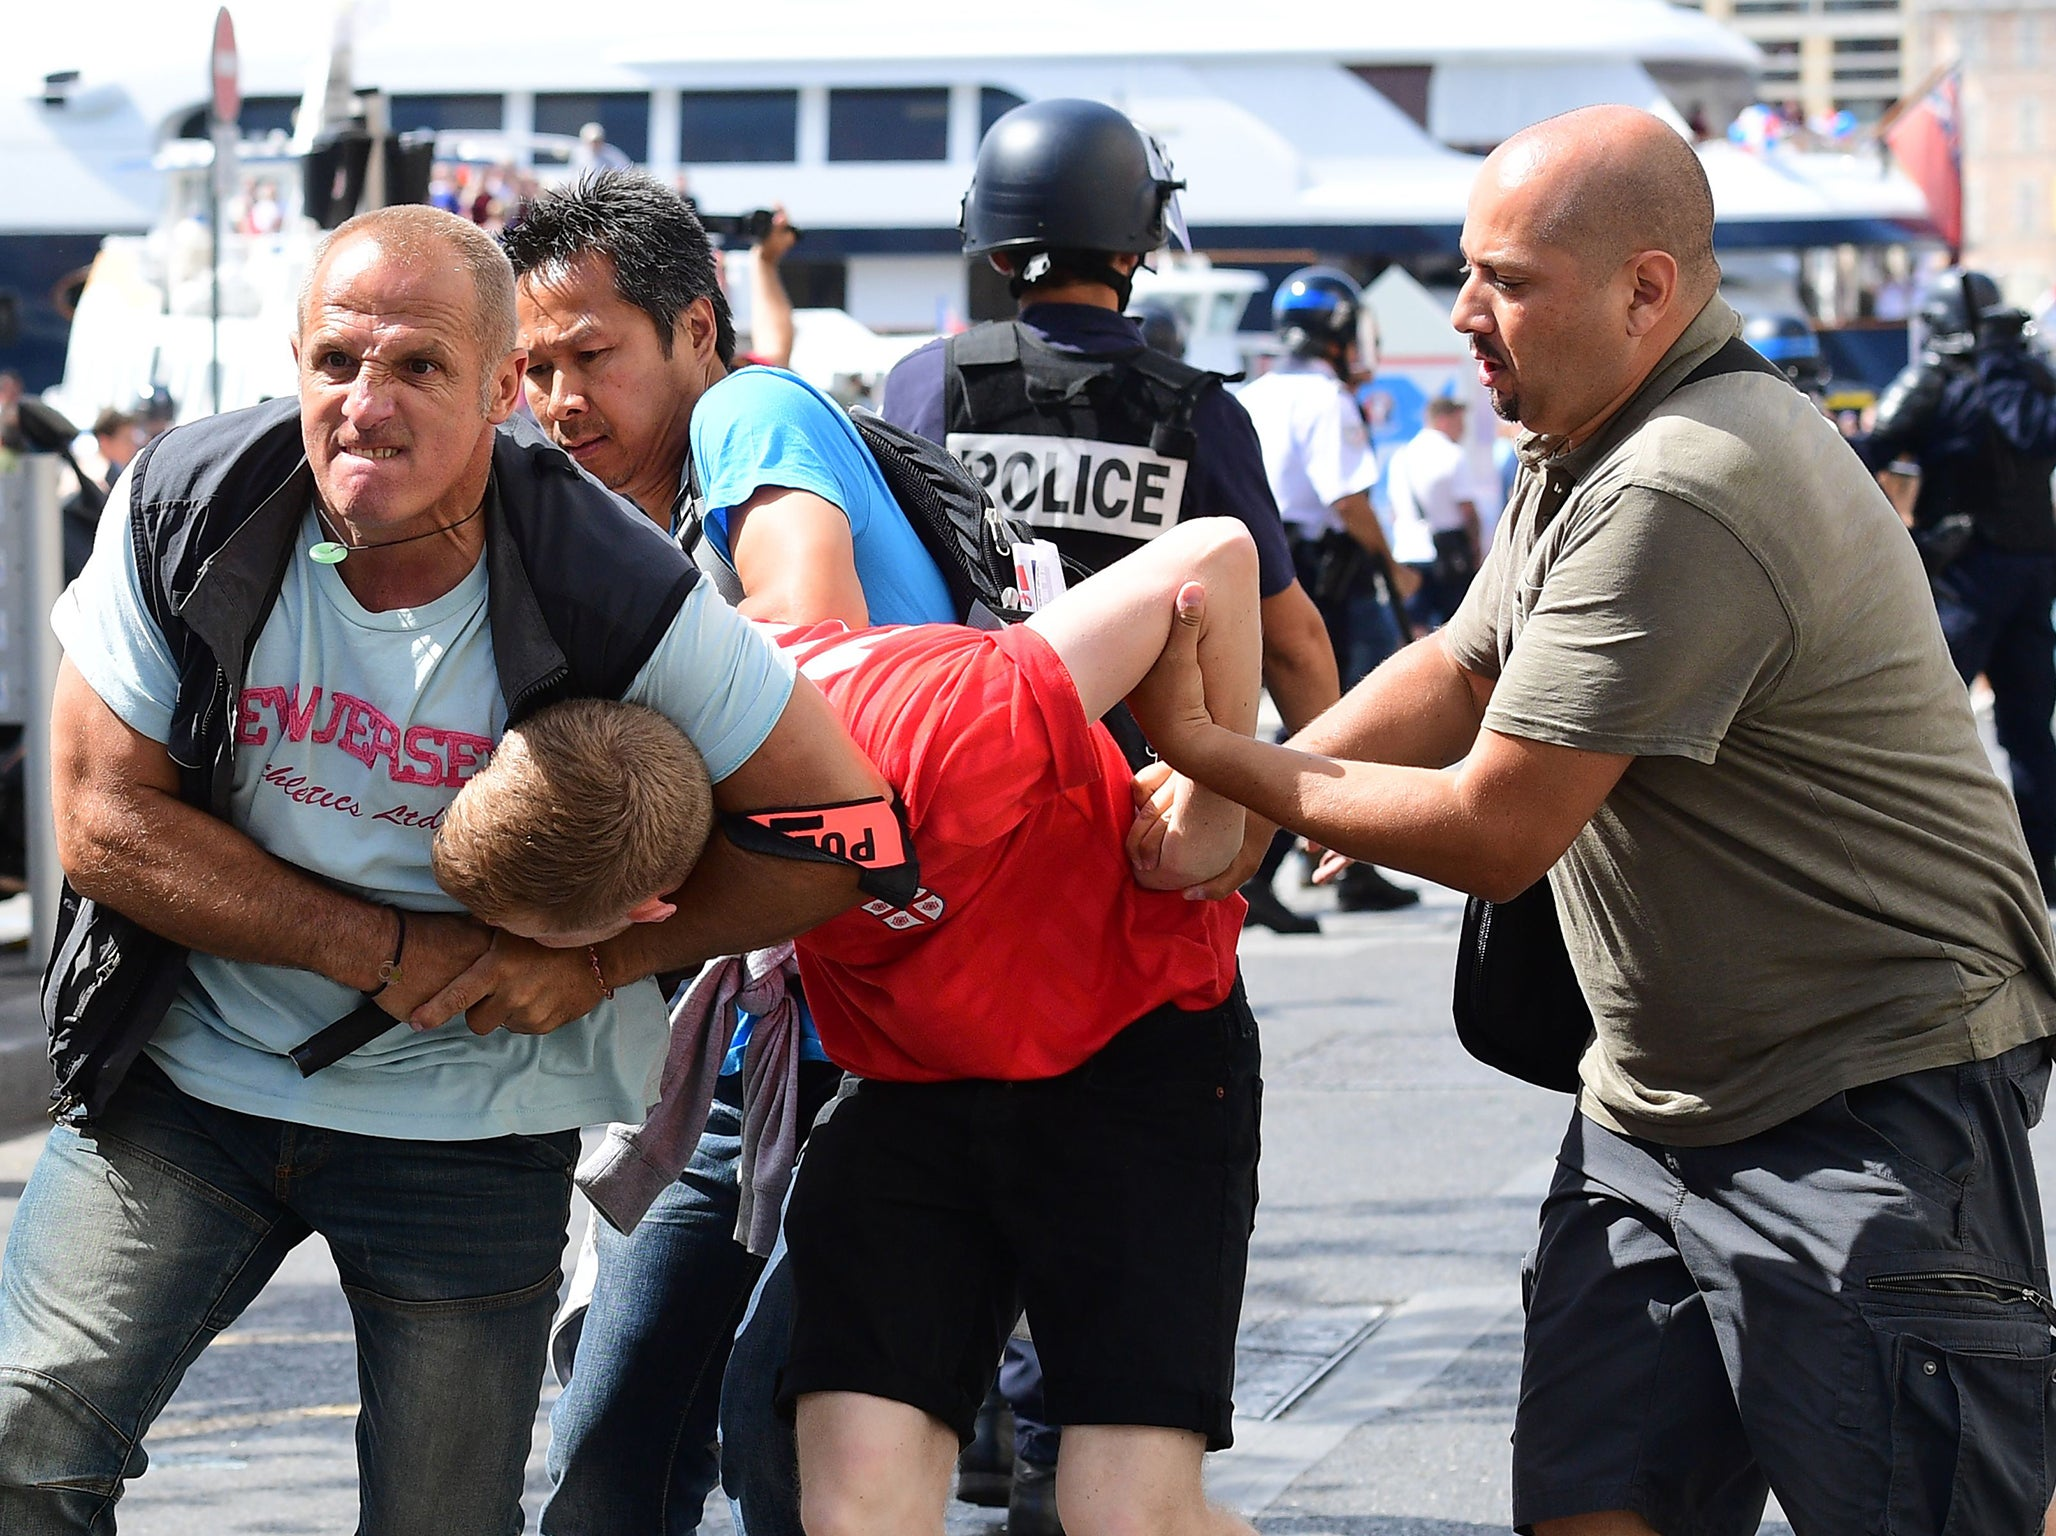 This is how the Russian authorities plan on preventing hooliganism at the 2018 World Cup